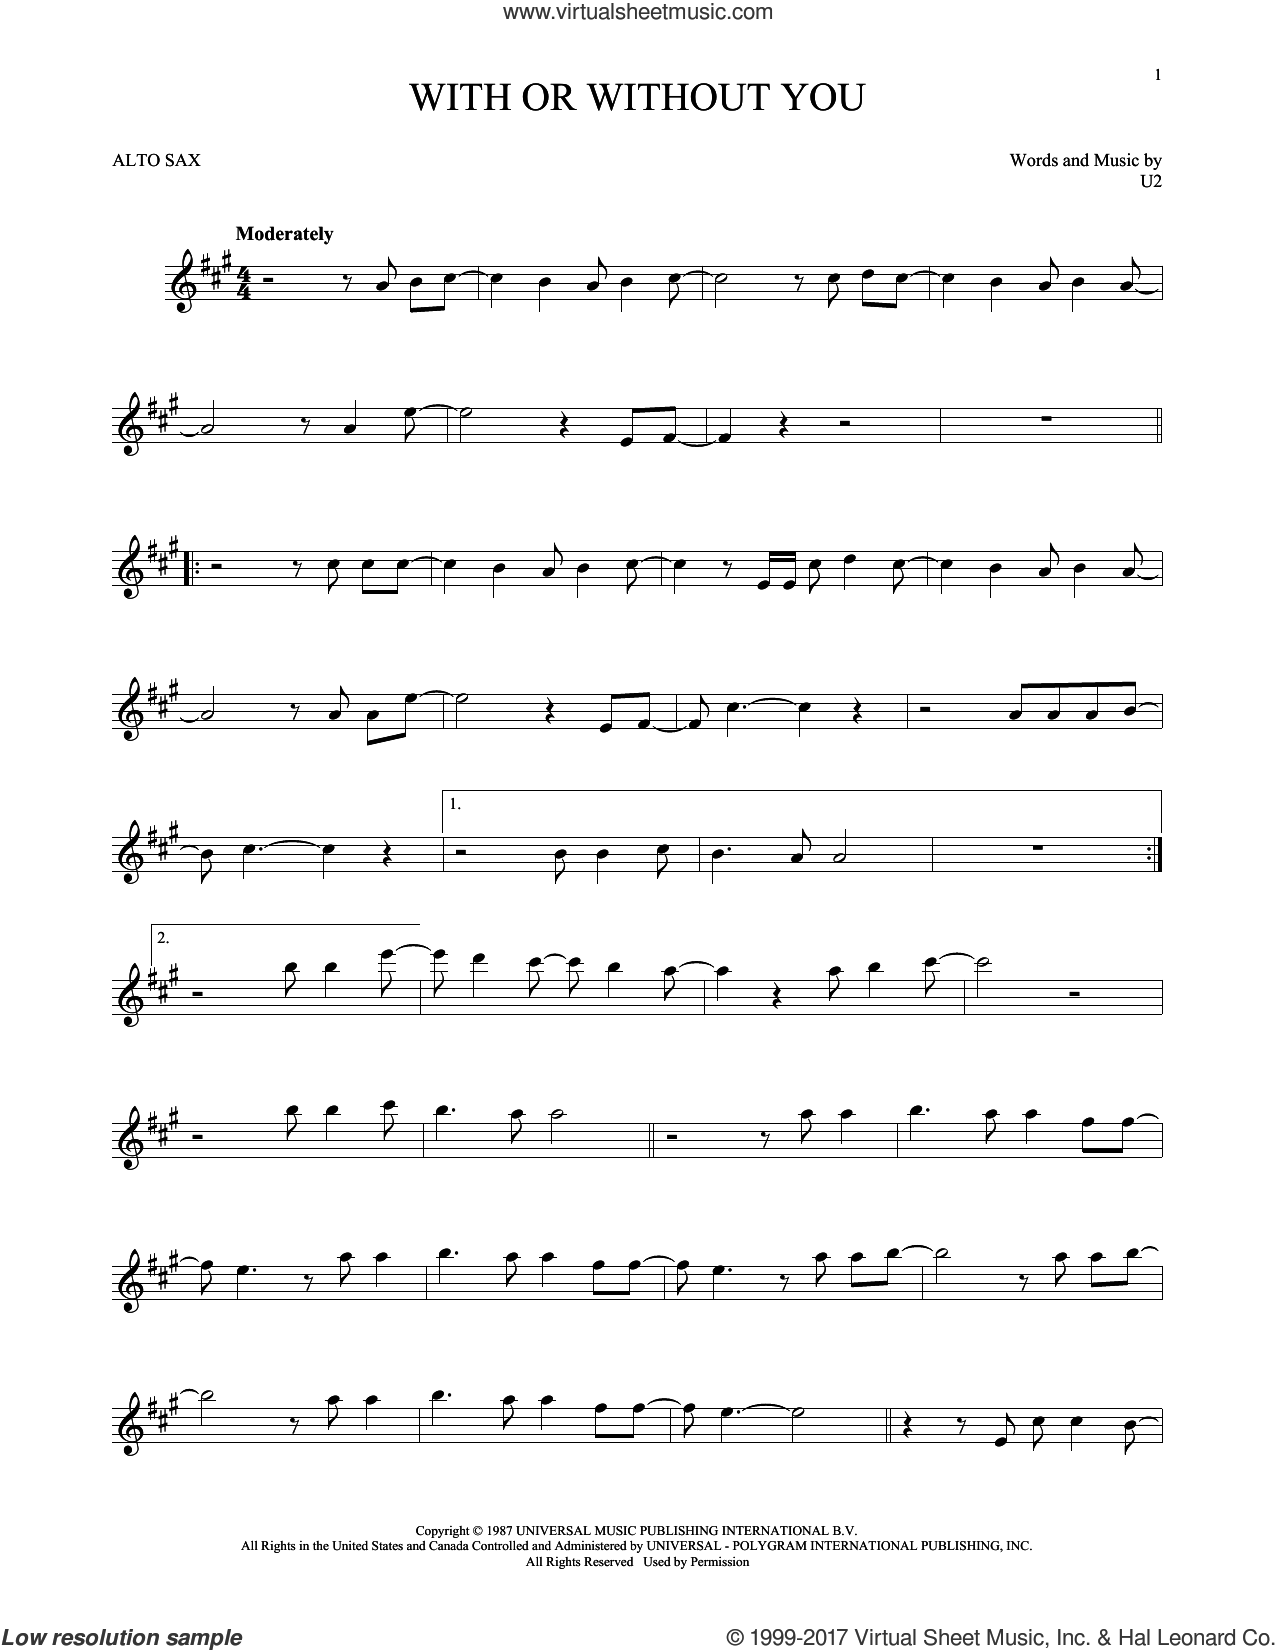 With Or Without You sheet music for alto saxophone solo by U2, intermediate skill level